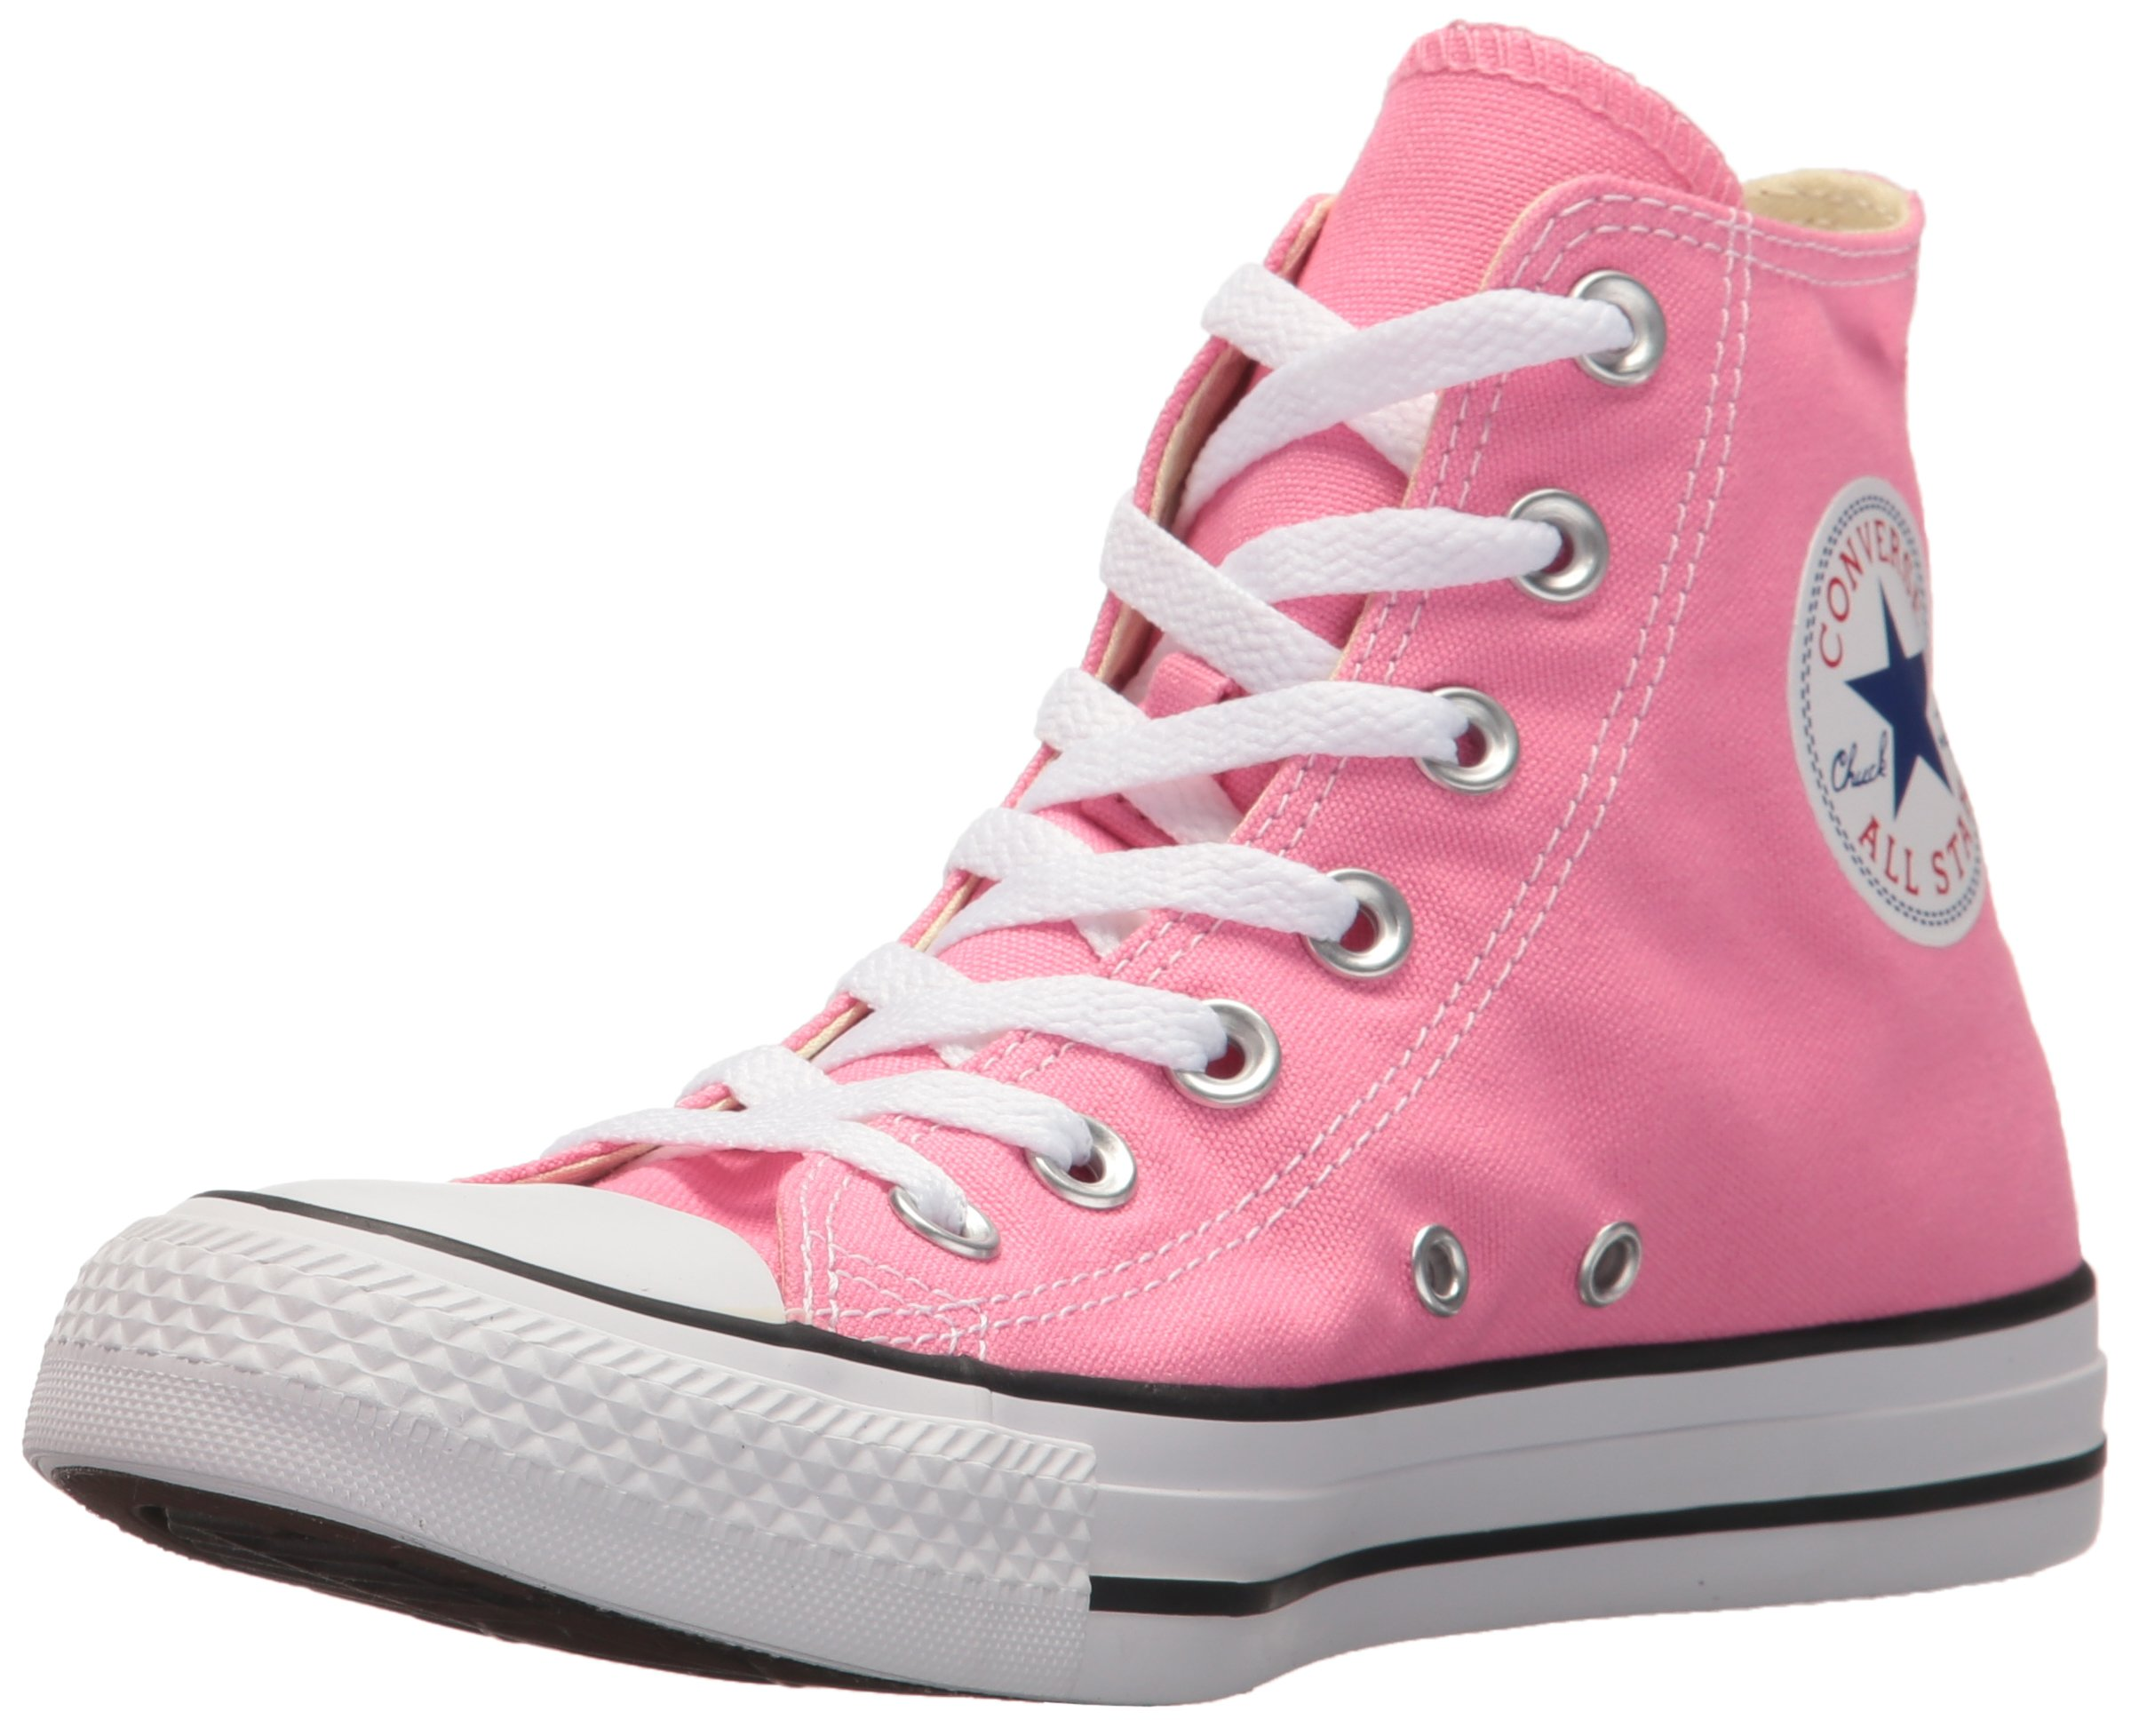 Converse Chuck Taylor All Star Canvas High Top Sneaker, Pink, 8 B(M) US Women/6 D(M) US Men by Converse